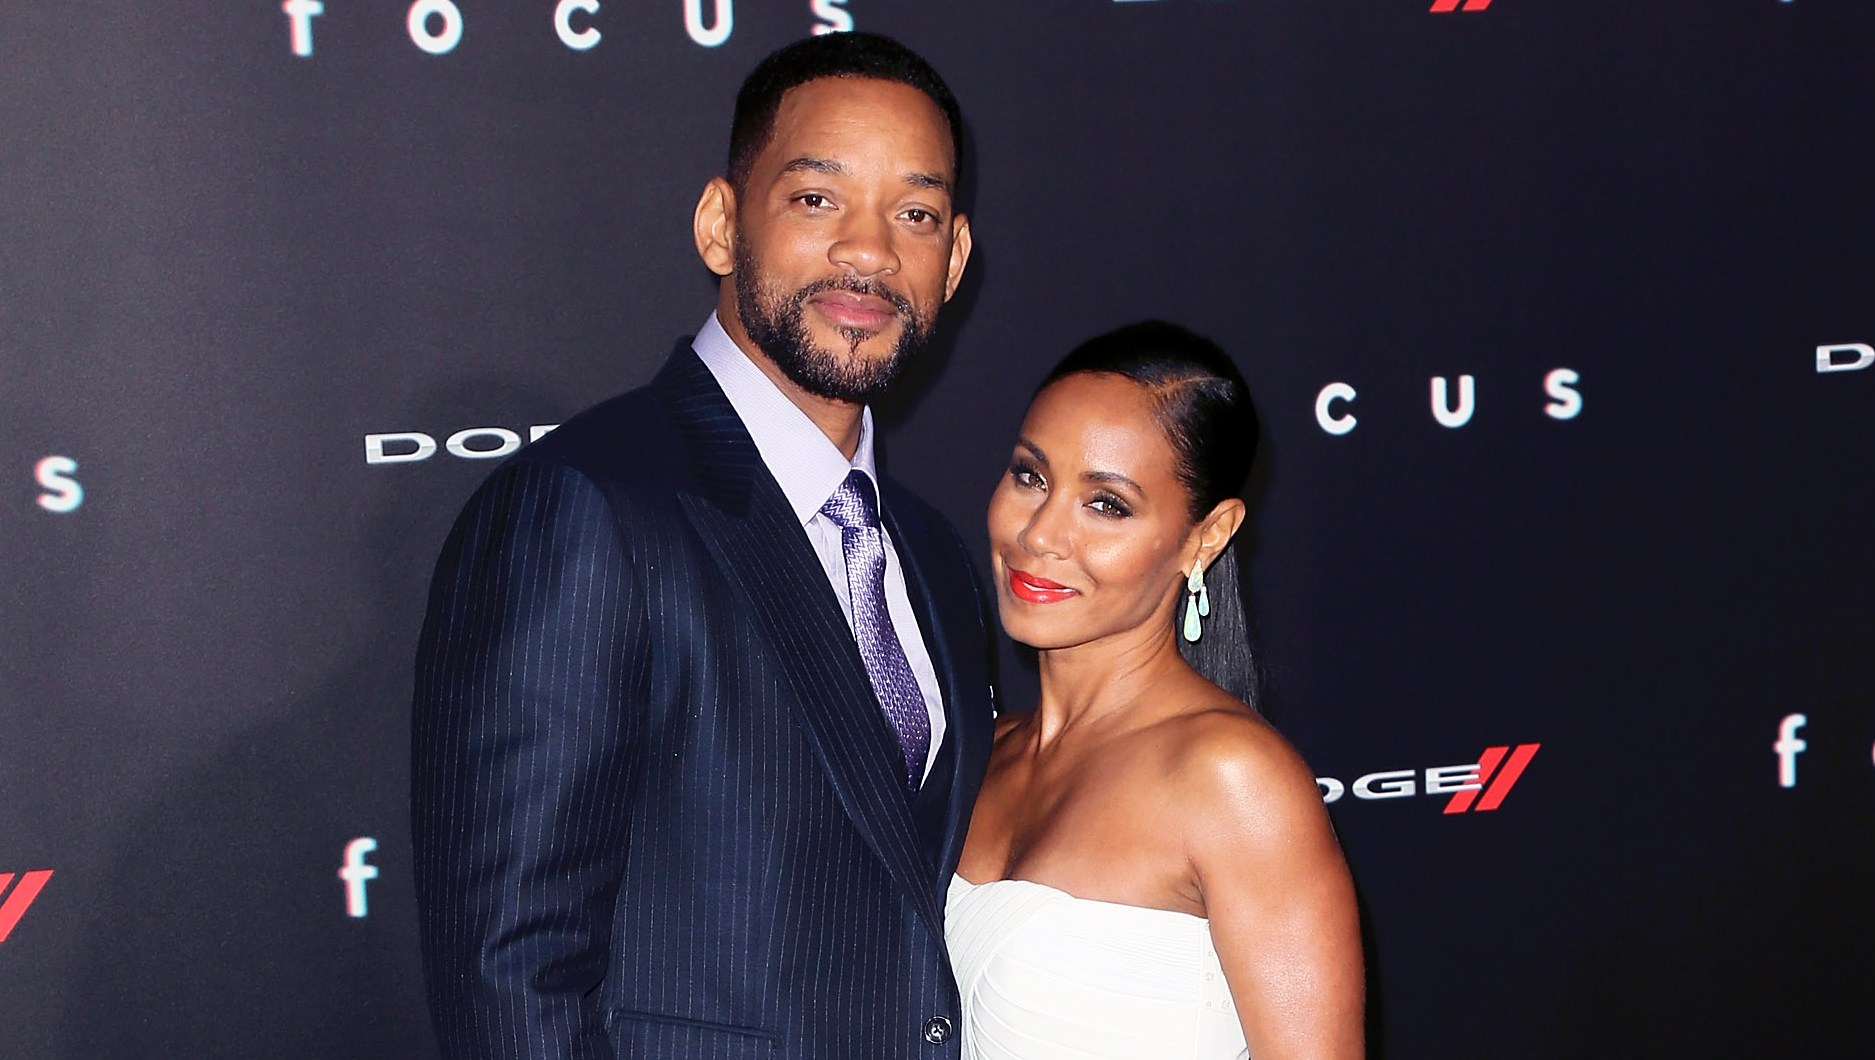 Will Smith Jada Pinkett Smith New Song Divorce Rumors